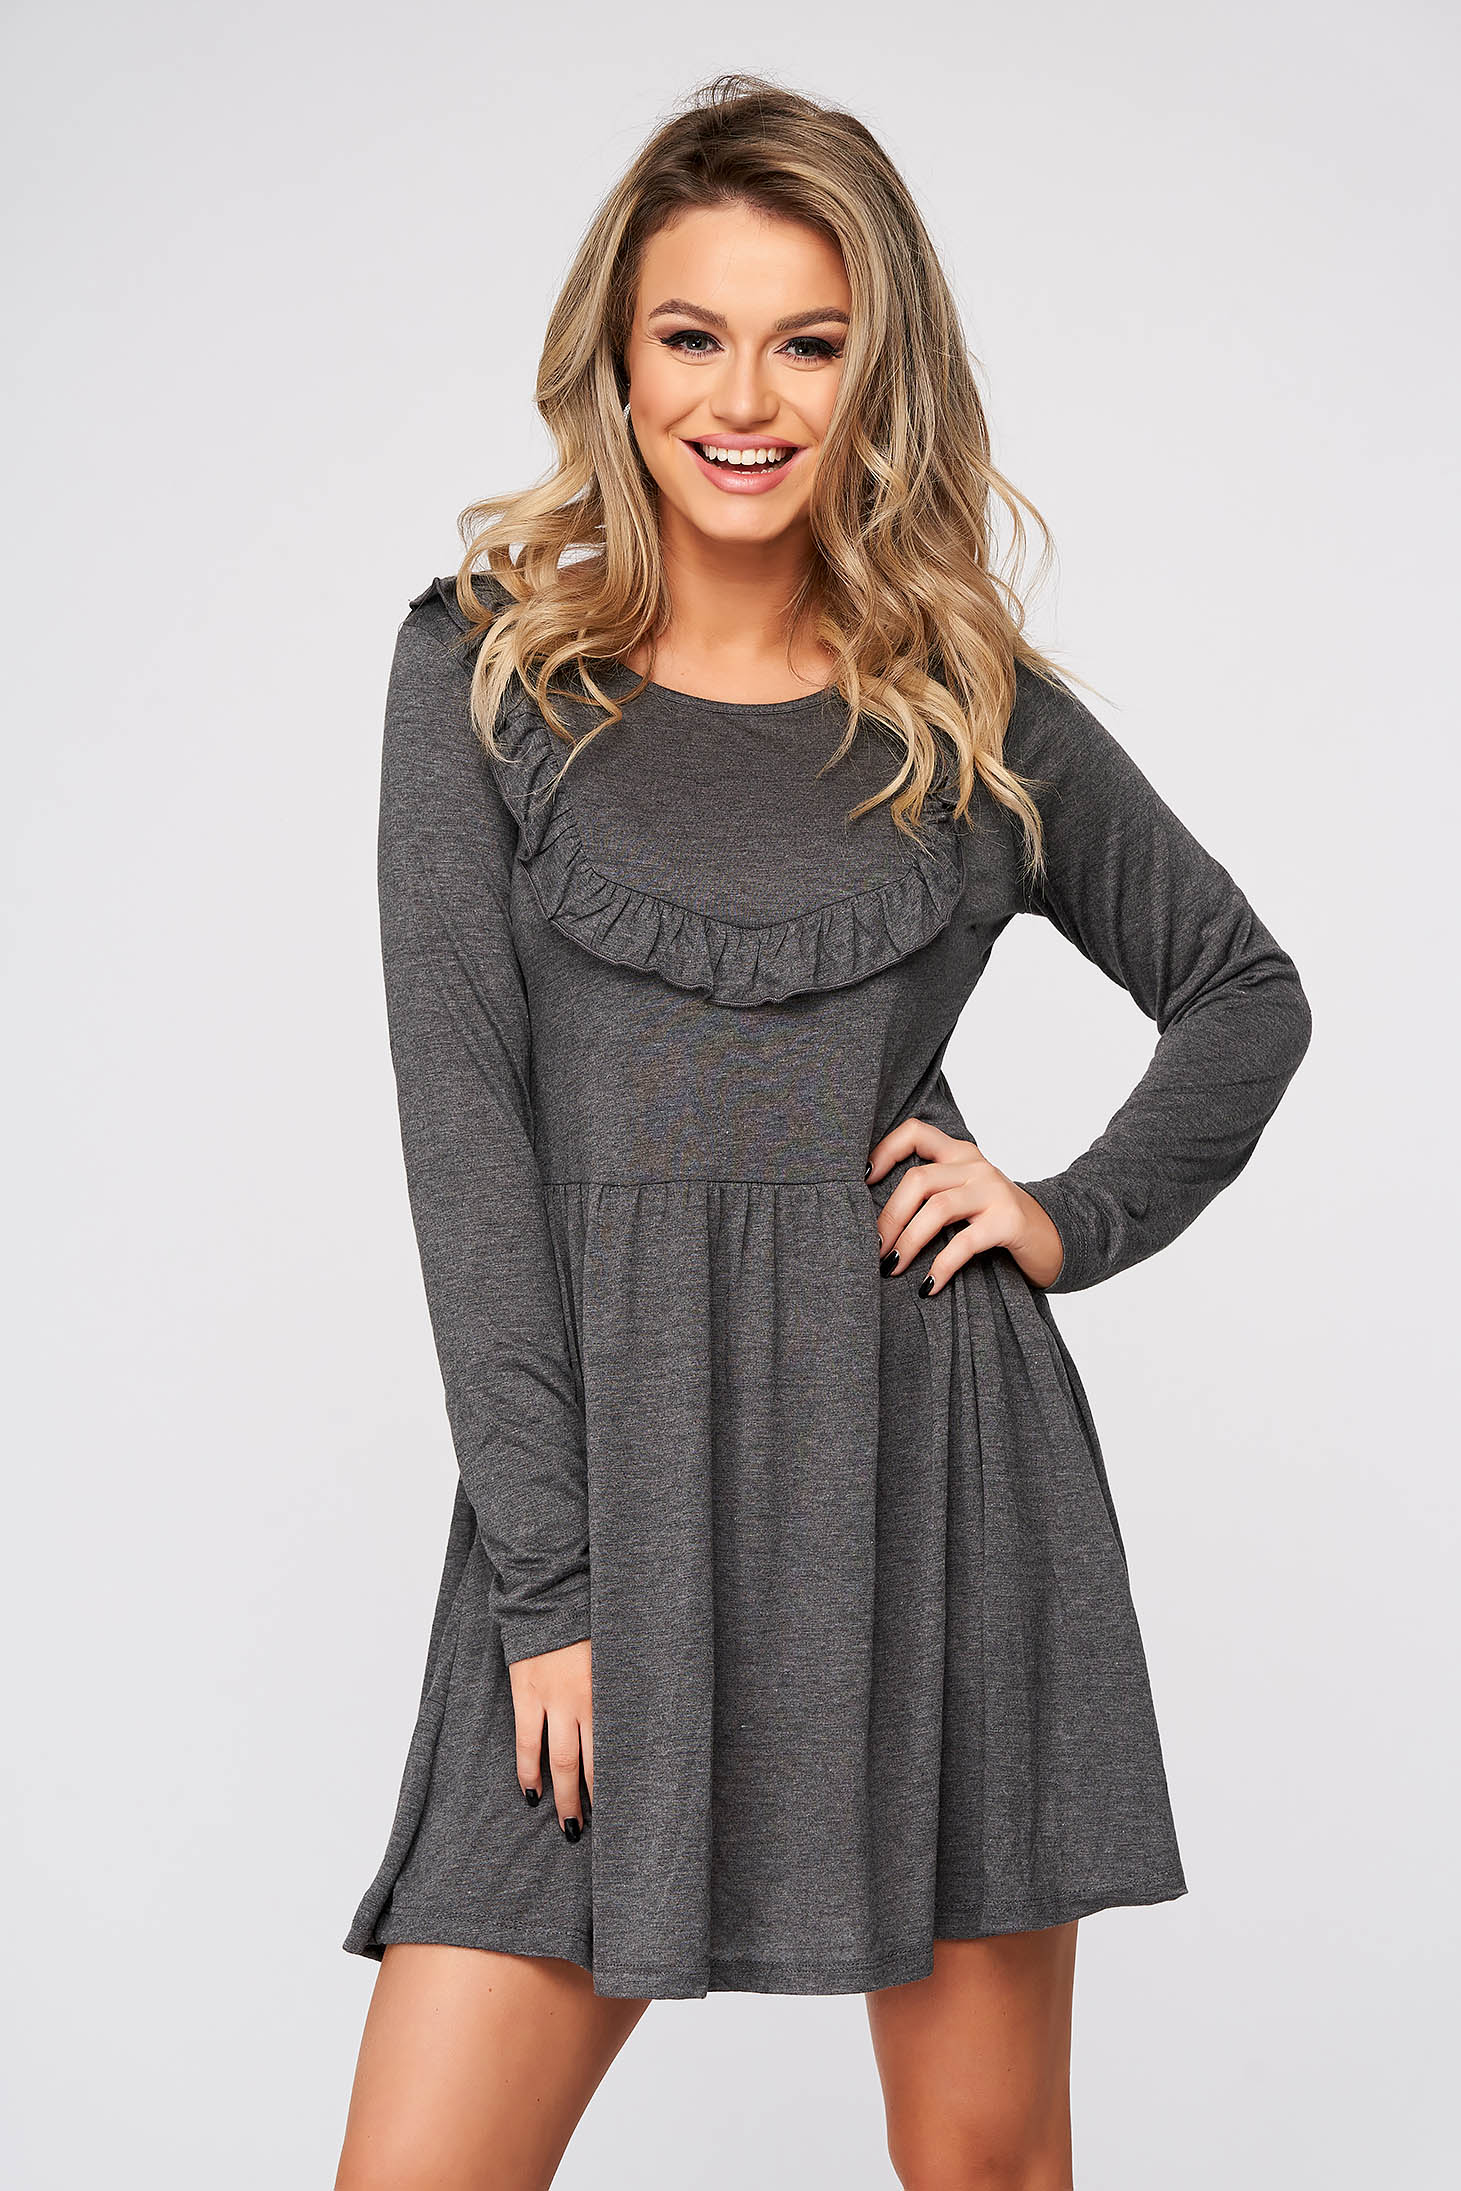 Grey dress short cut cloche casual long sleeved with ruffle details